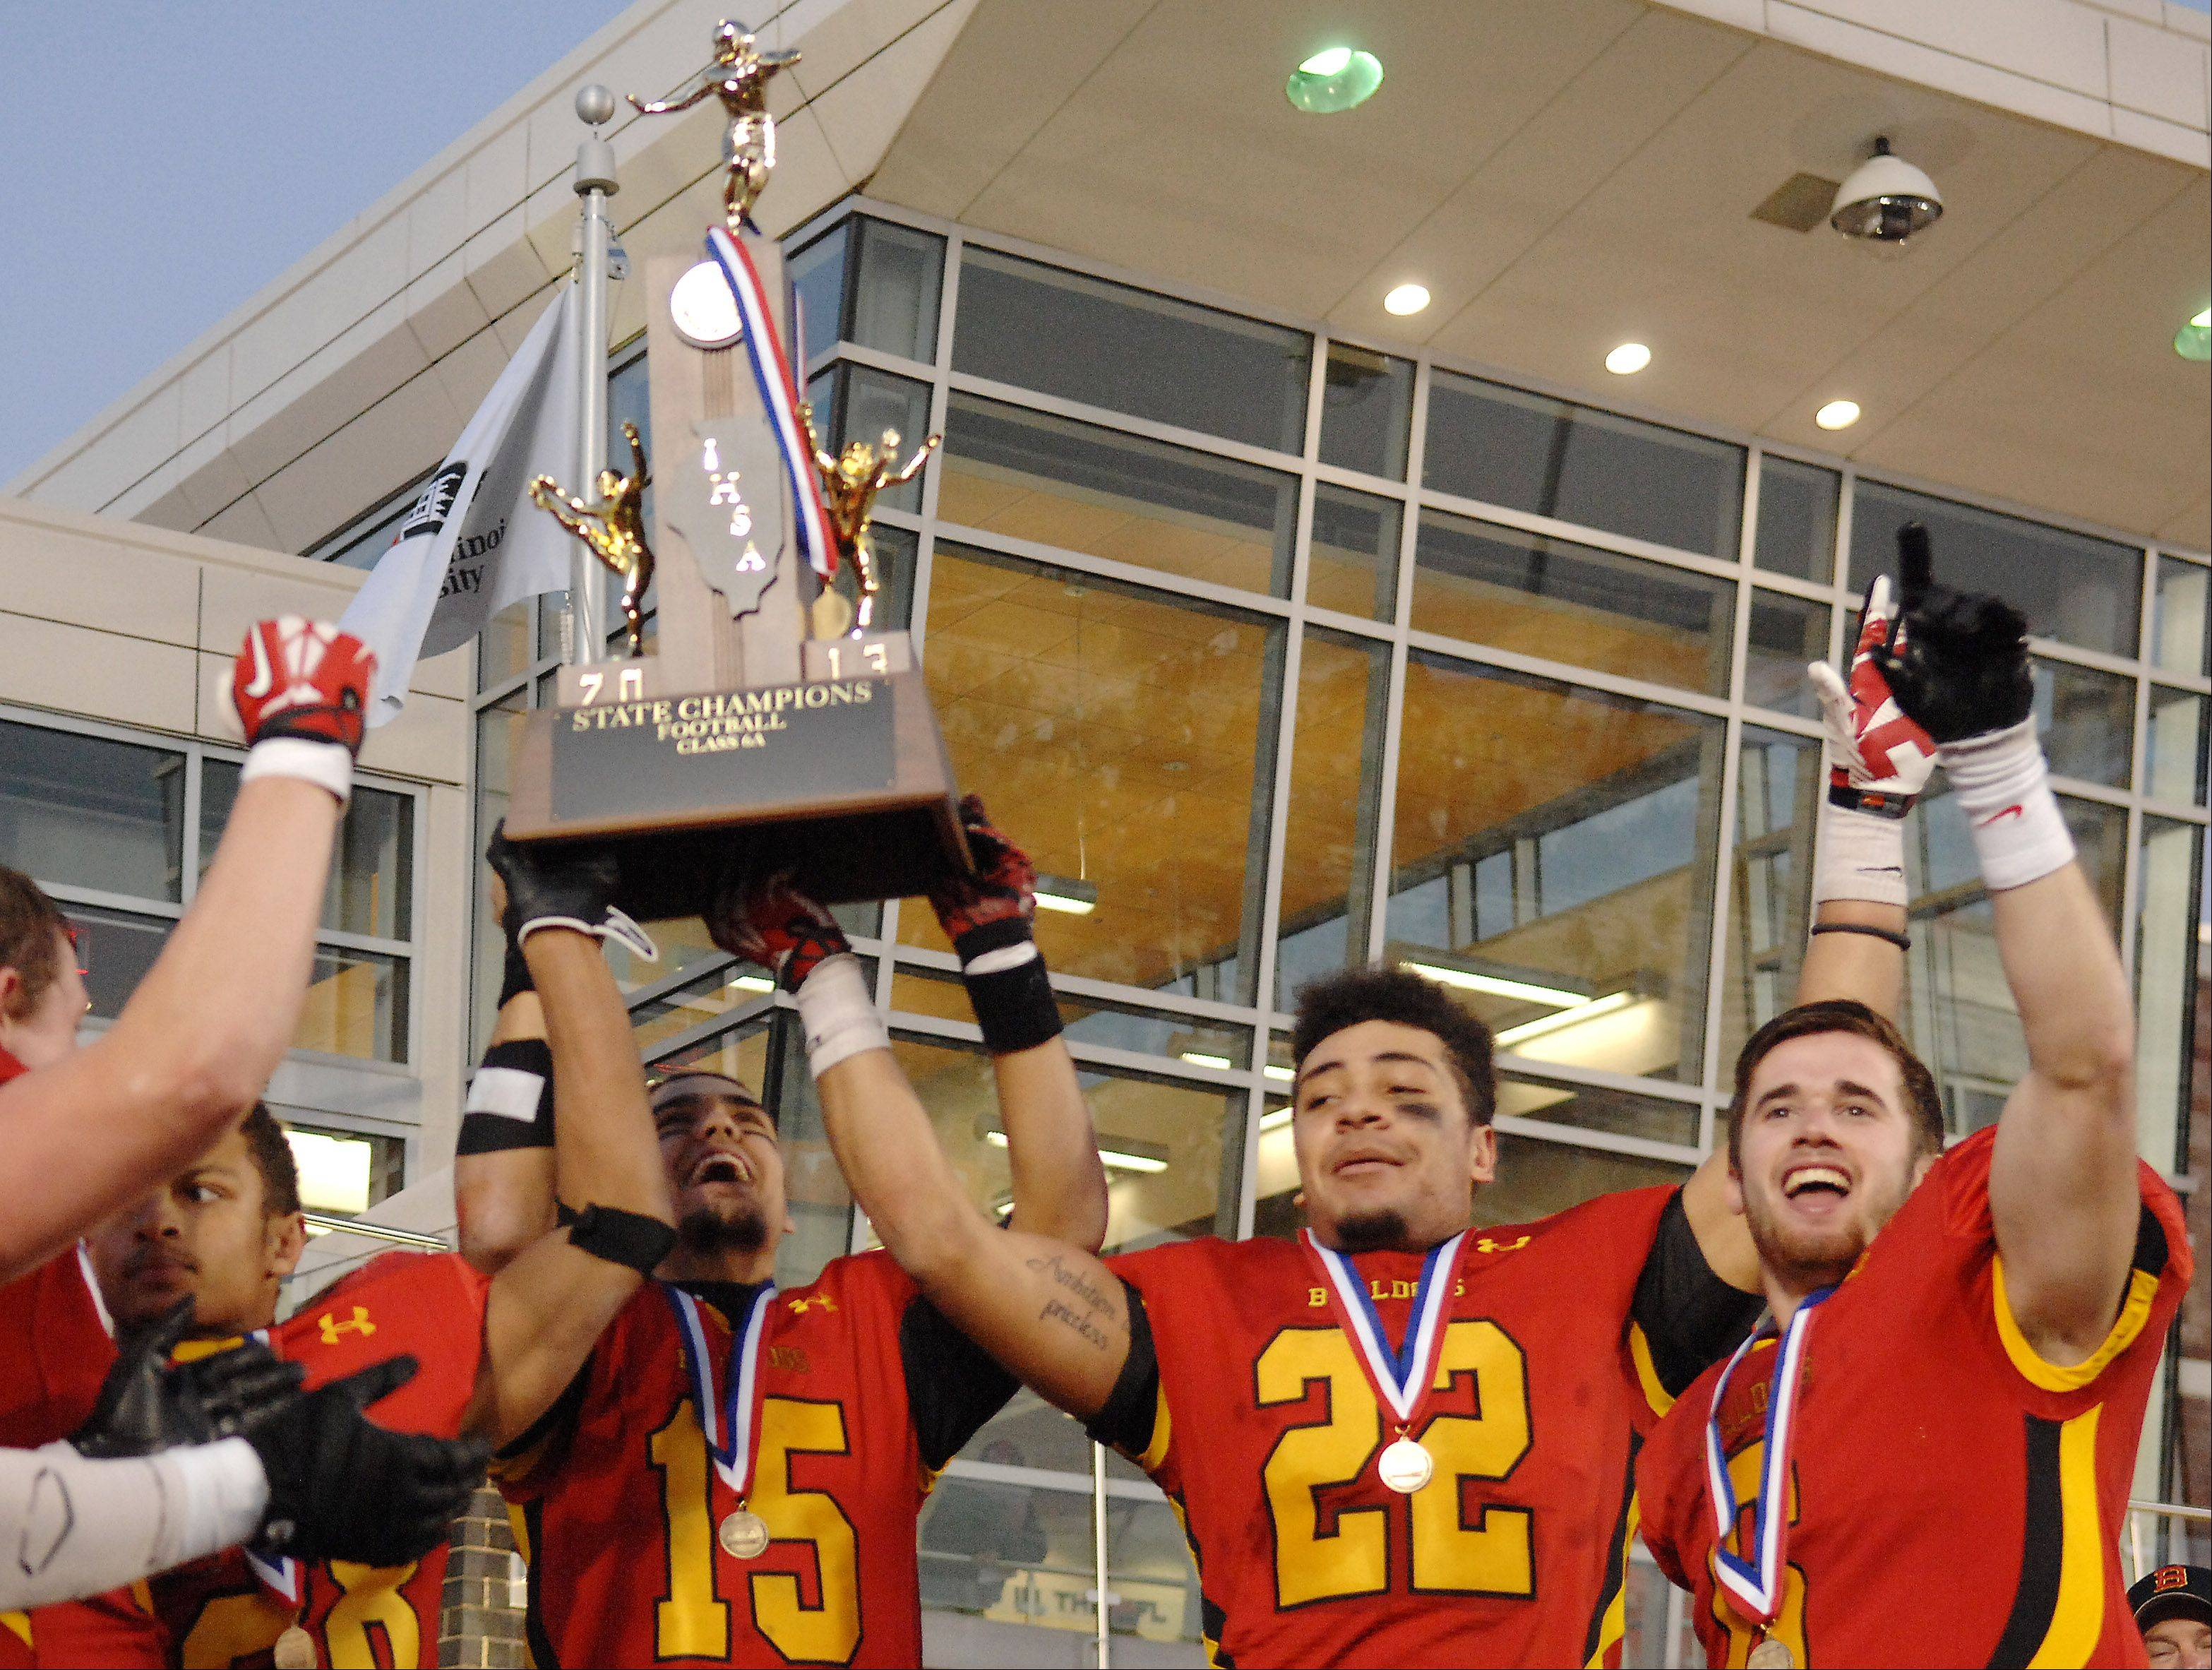 The Batavia captains hoist the championship trophy following their Class 6A championship game in DeKalb.